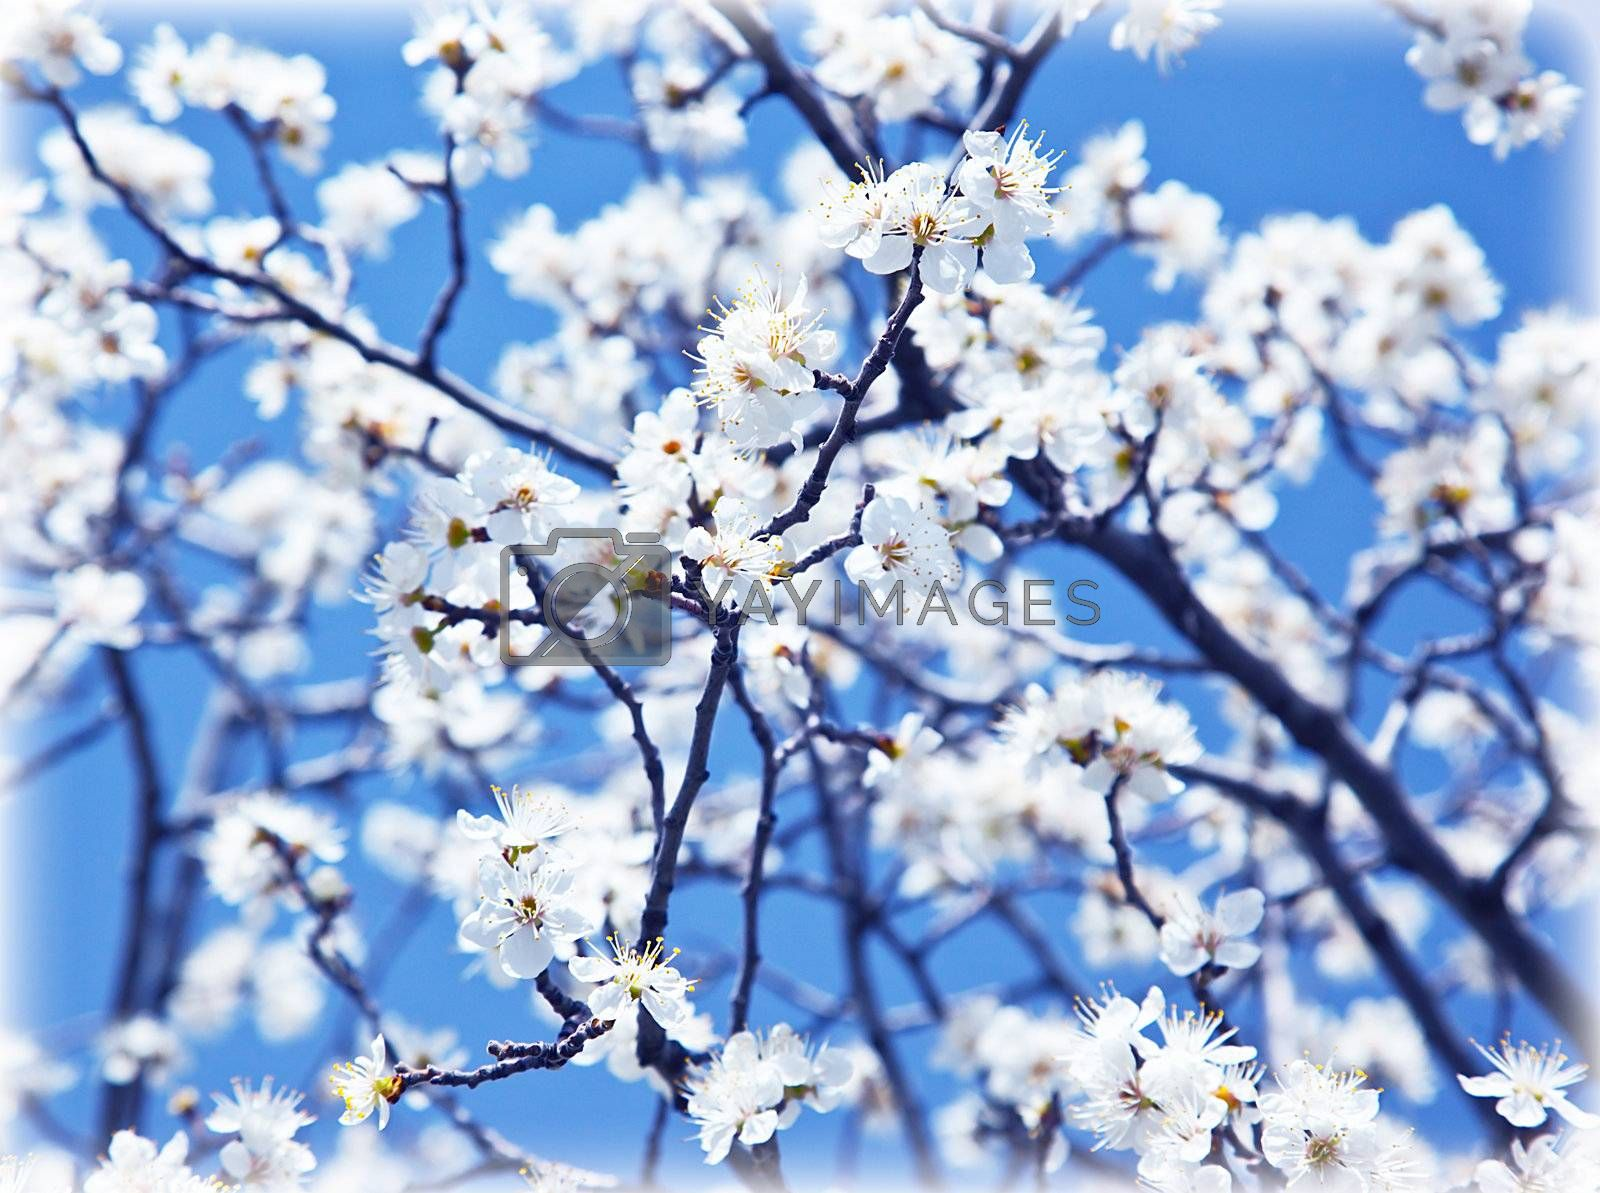 Abstract floral background, blooming tree at spring, fresh white flowers on the branch of fruit tree, plant blossom, seasonal nature beauty, springtime